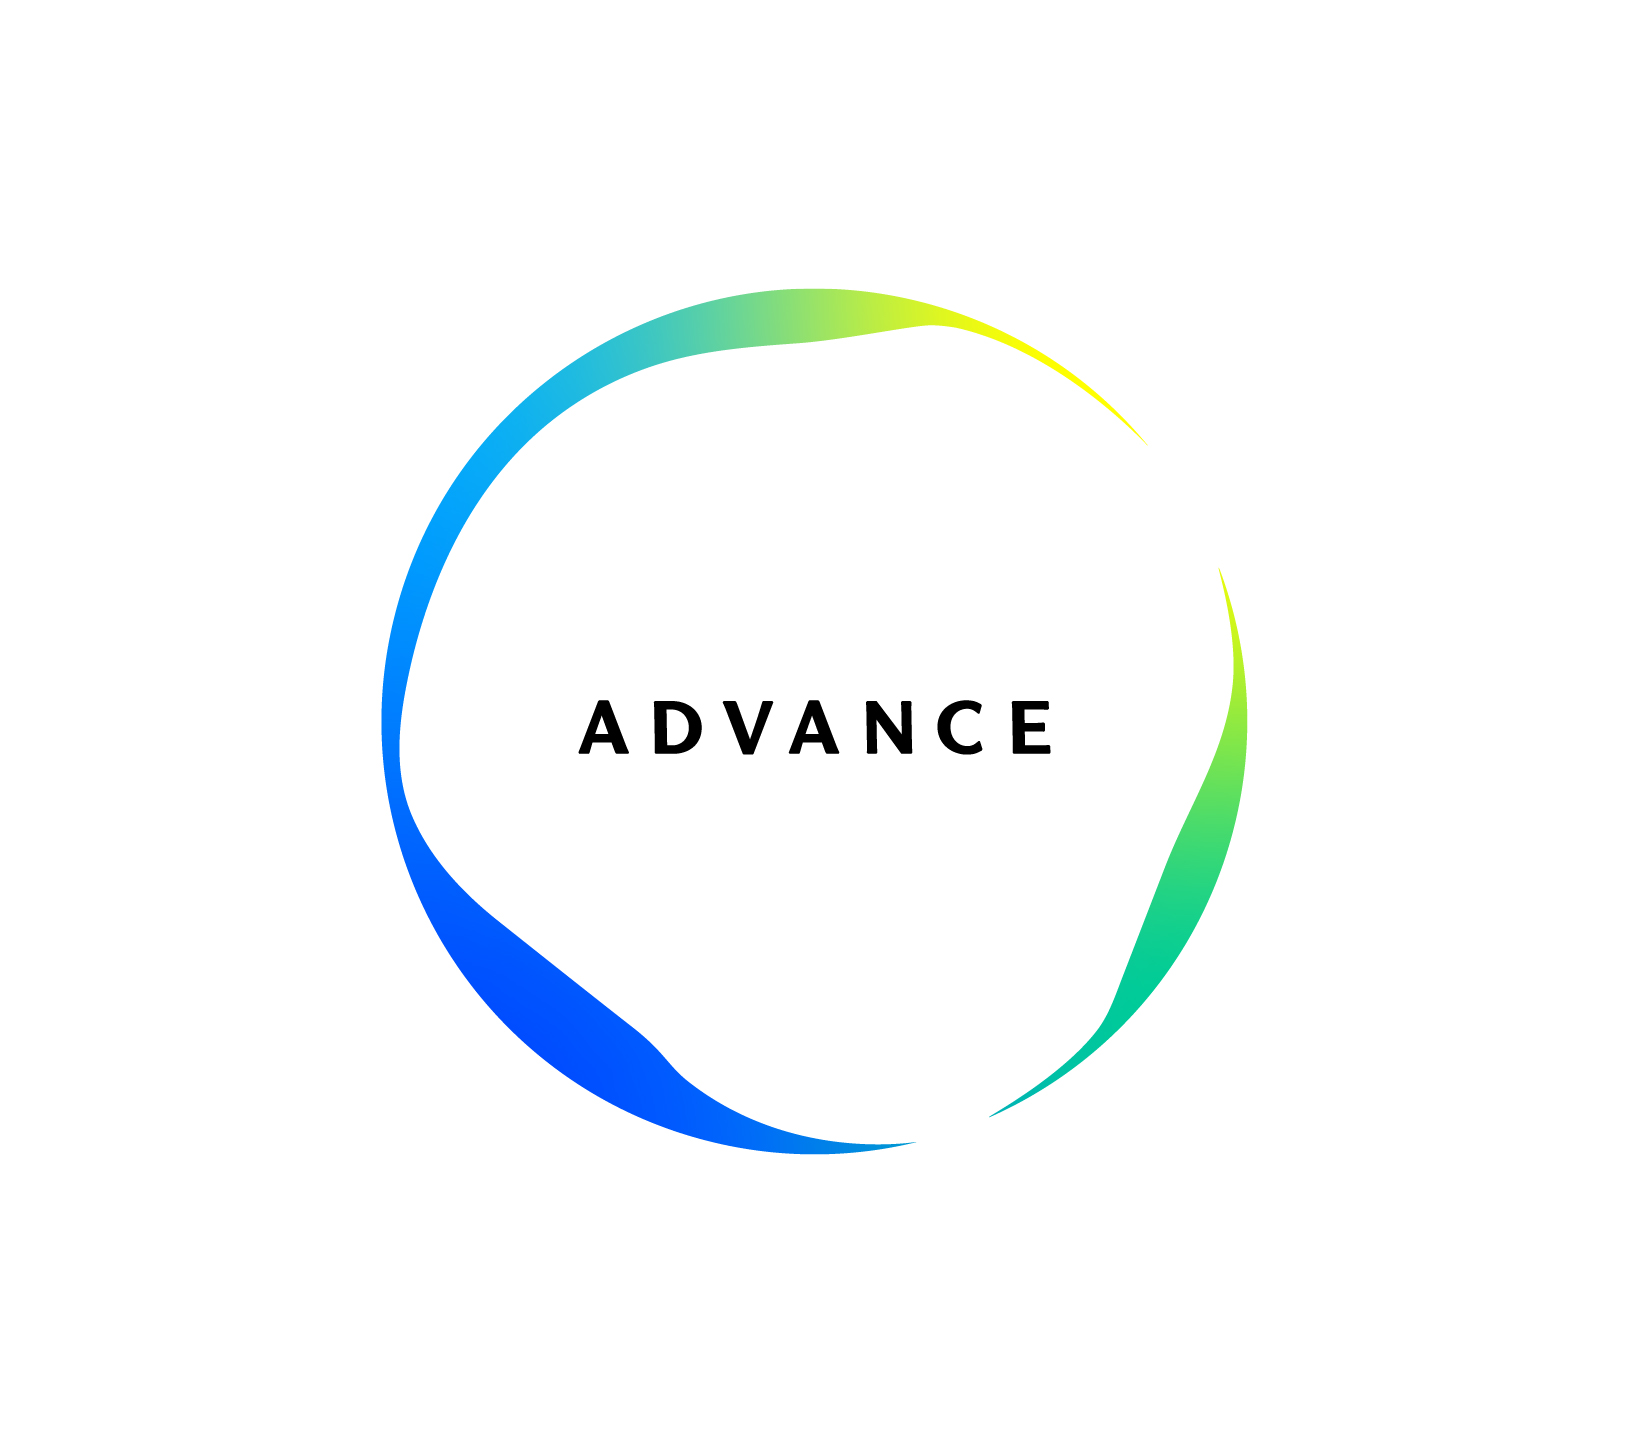 Advance_web_logo-13.jpg